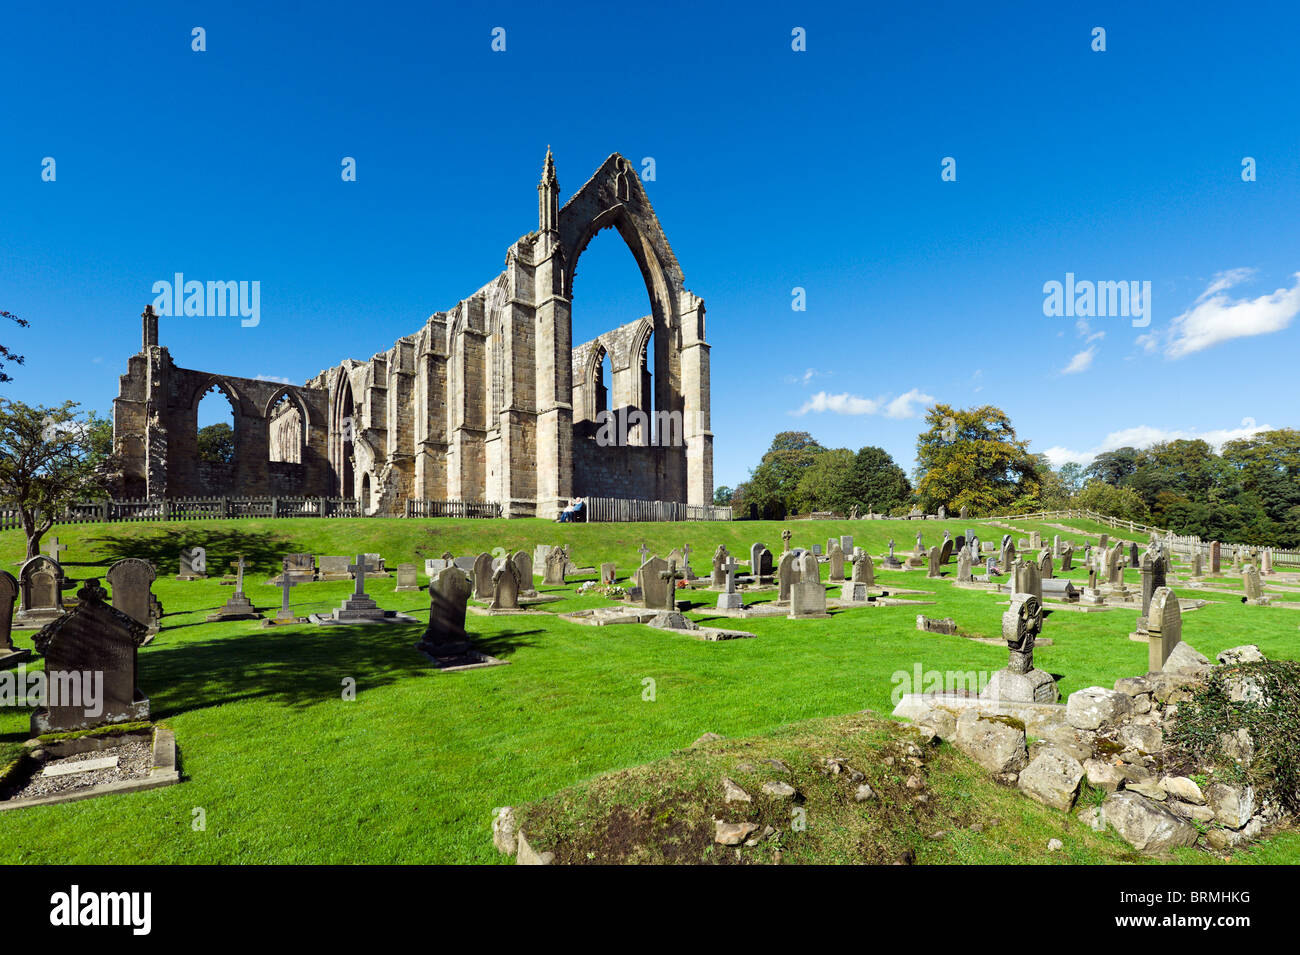 Bolton Priory, Bolton Abbey, Wharfedale, Yorkshire Dales National Park, North Yorkshire, England, UK - Stock Image